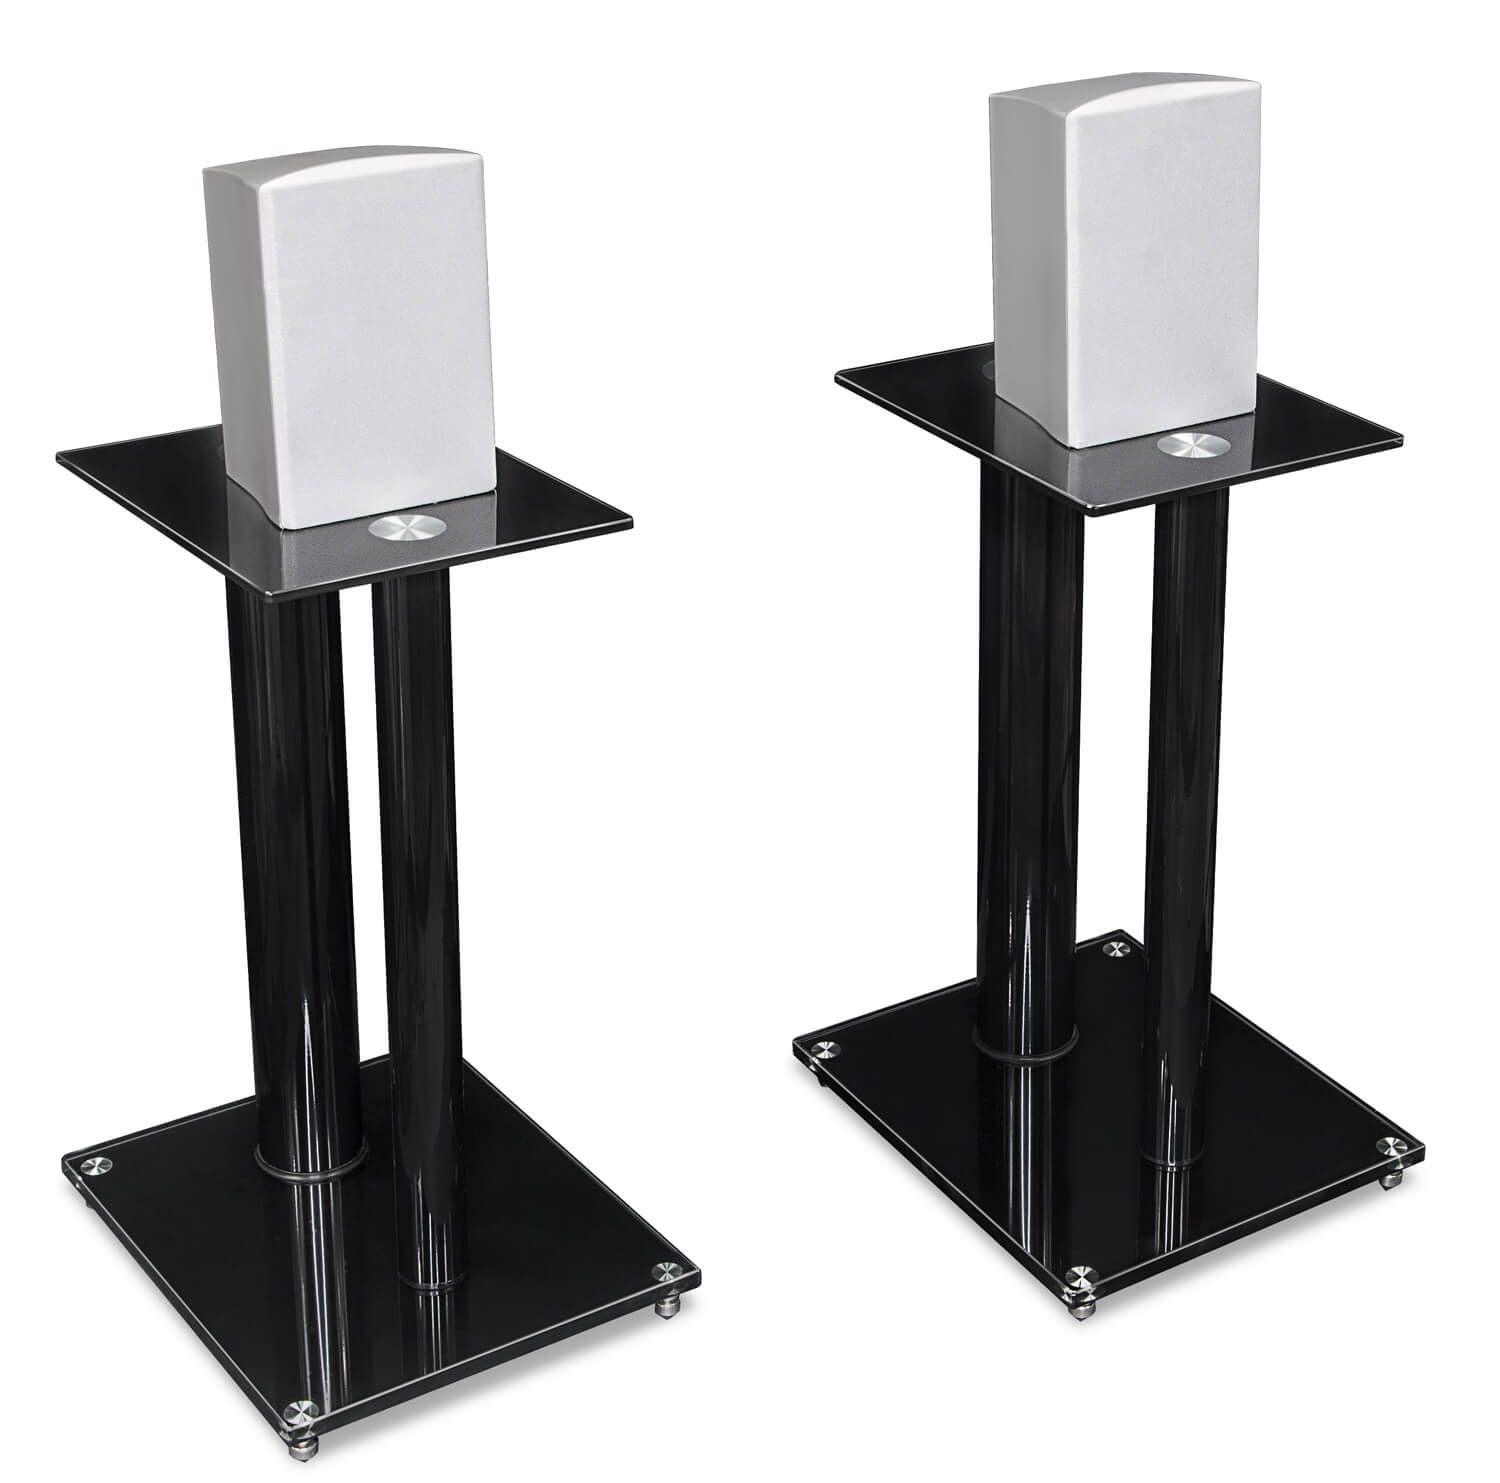 Speaker stands with aluminum or glass top plates